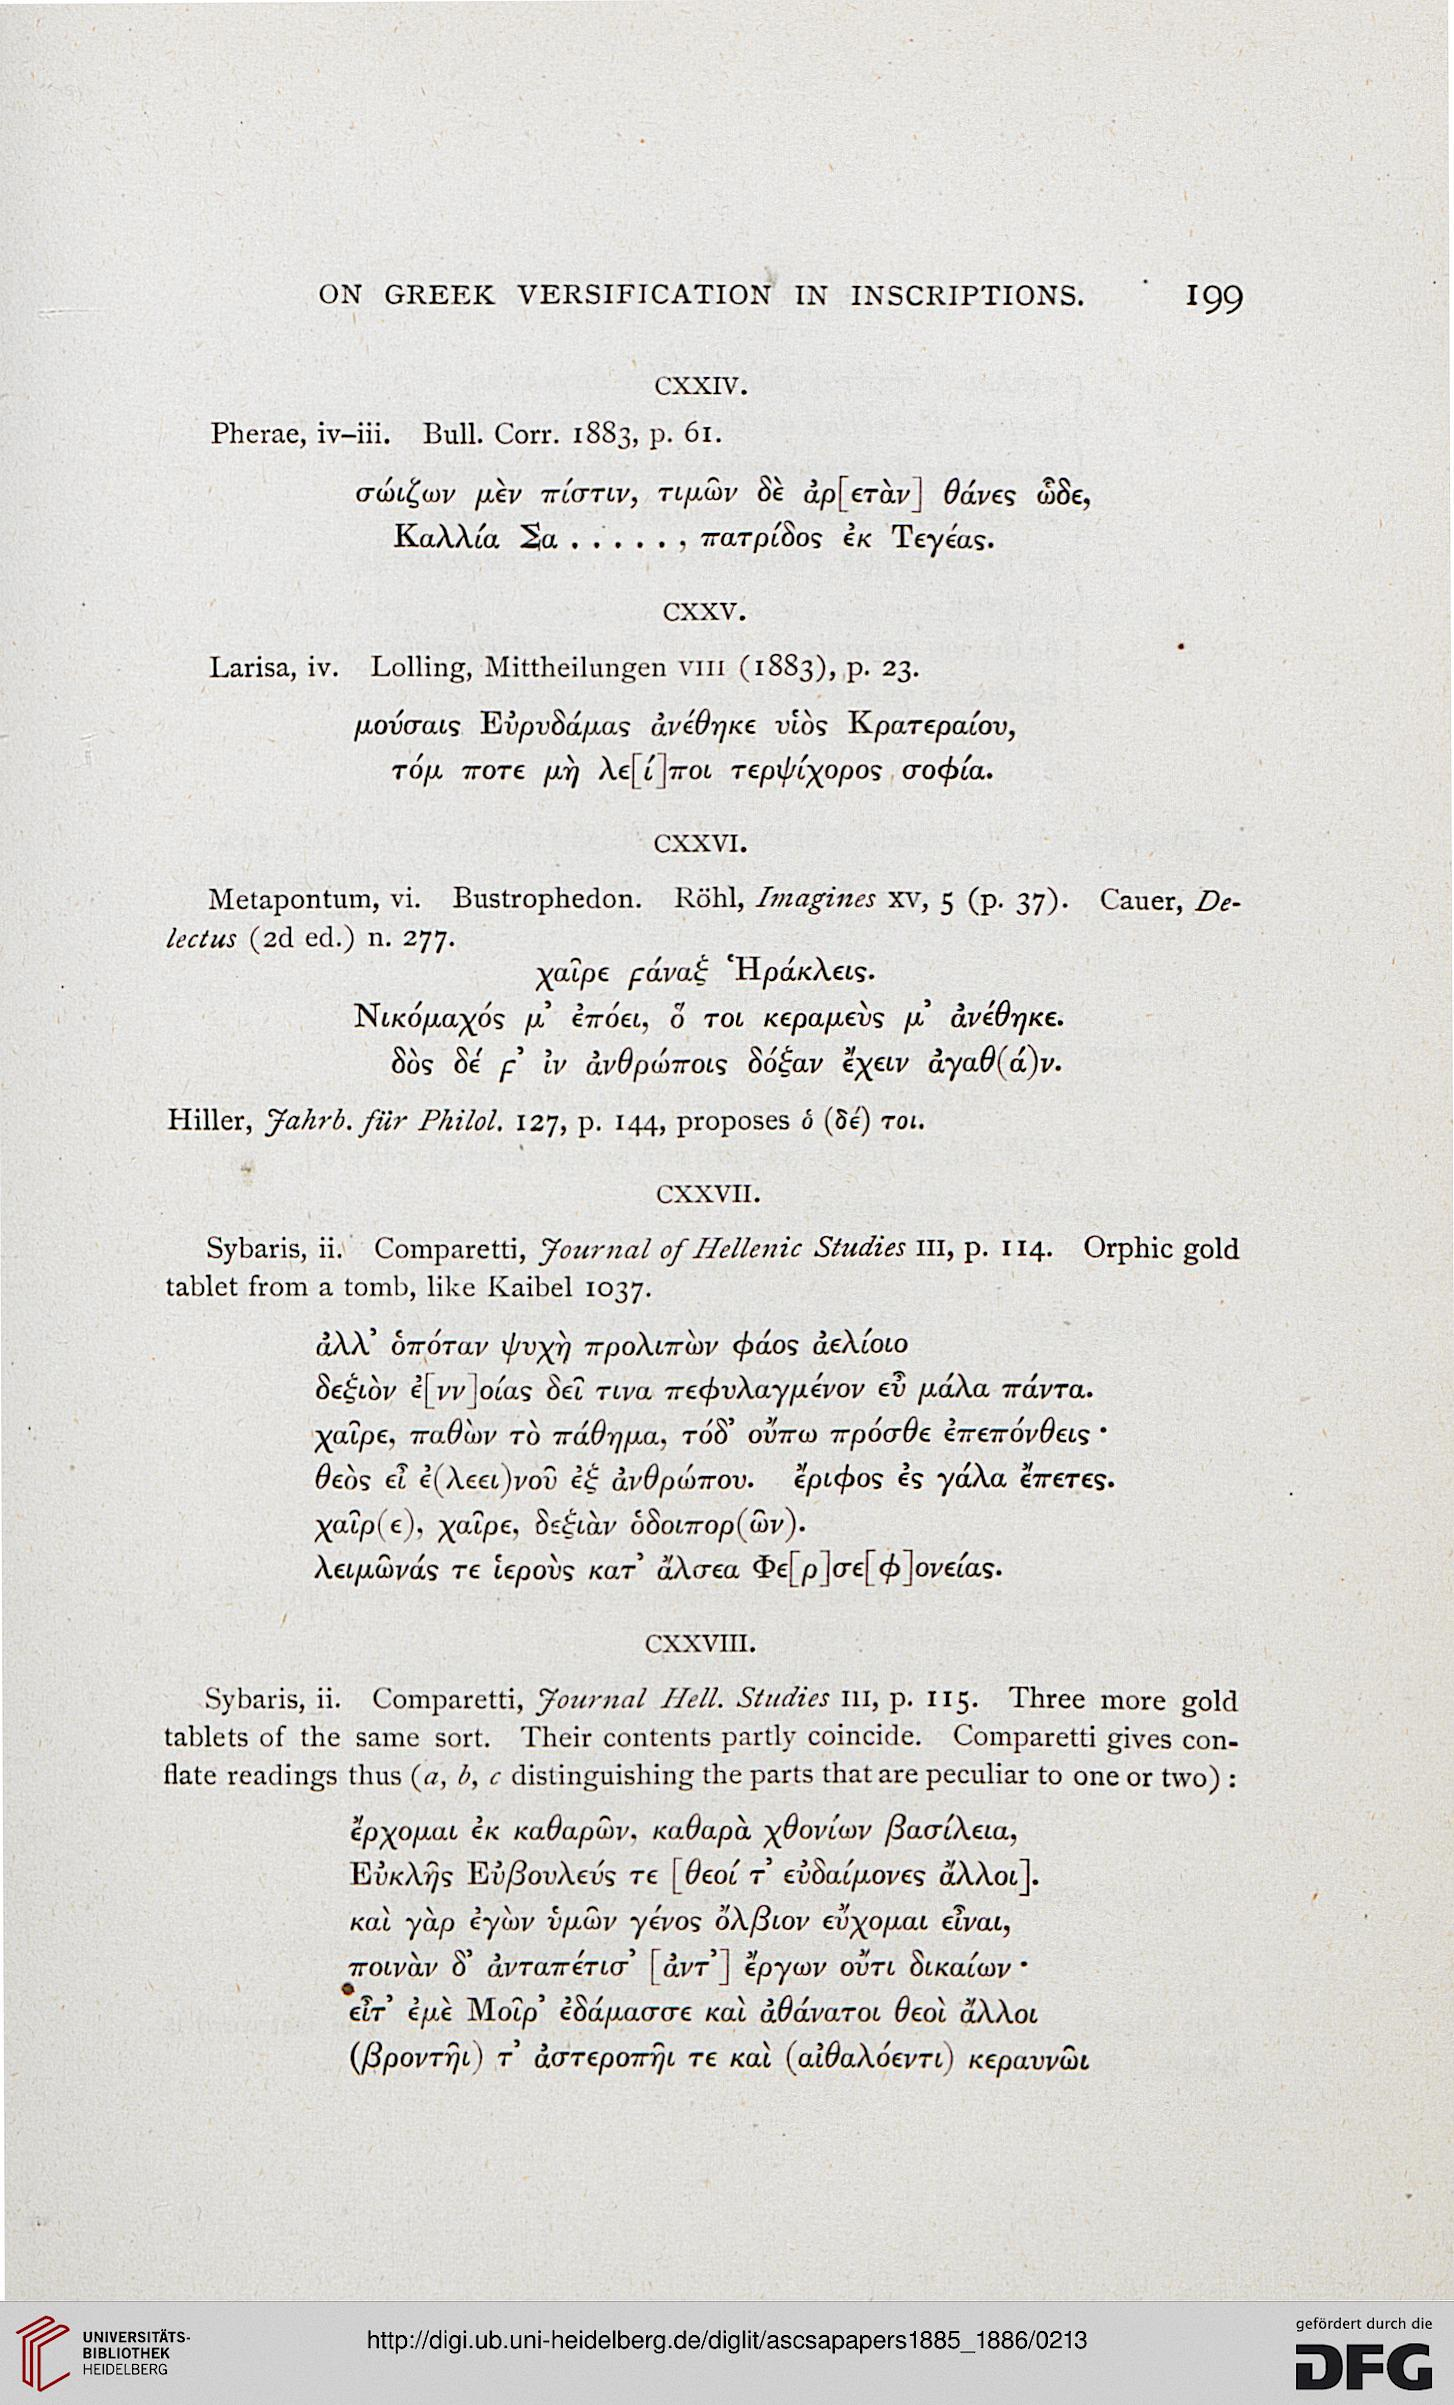 Papers of the American School of Classical Studies at Athens (4 1885